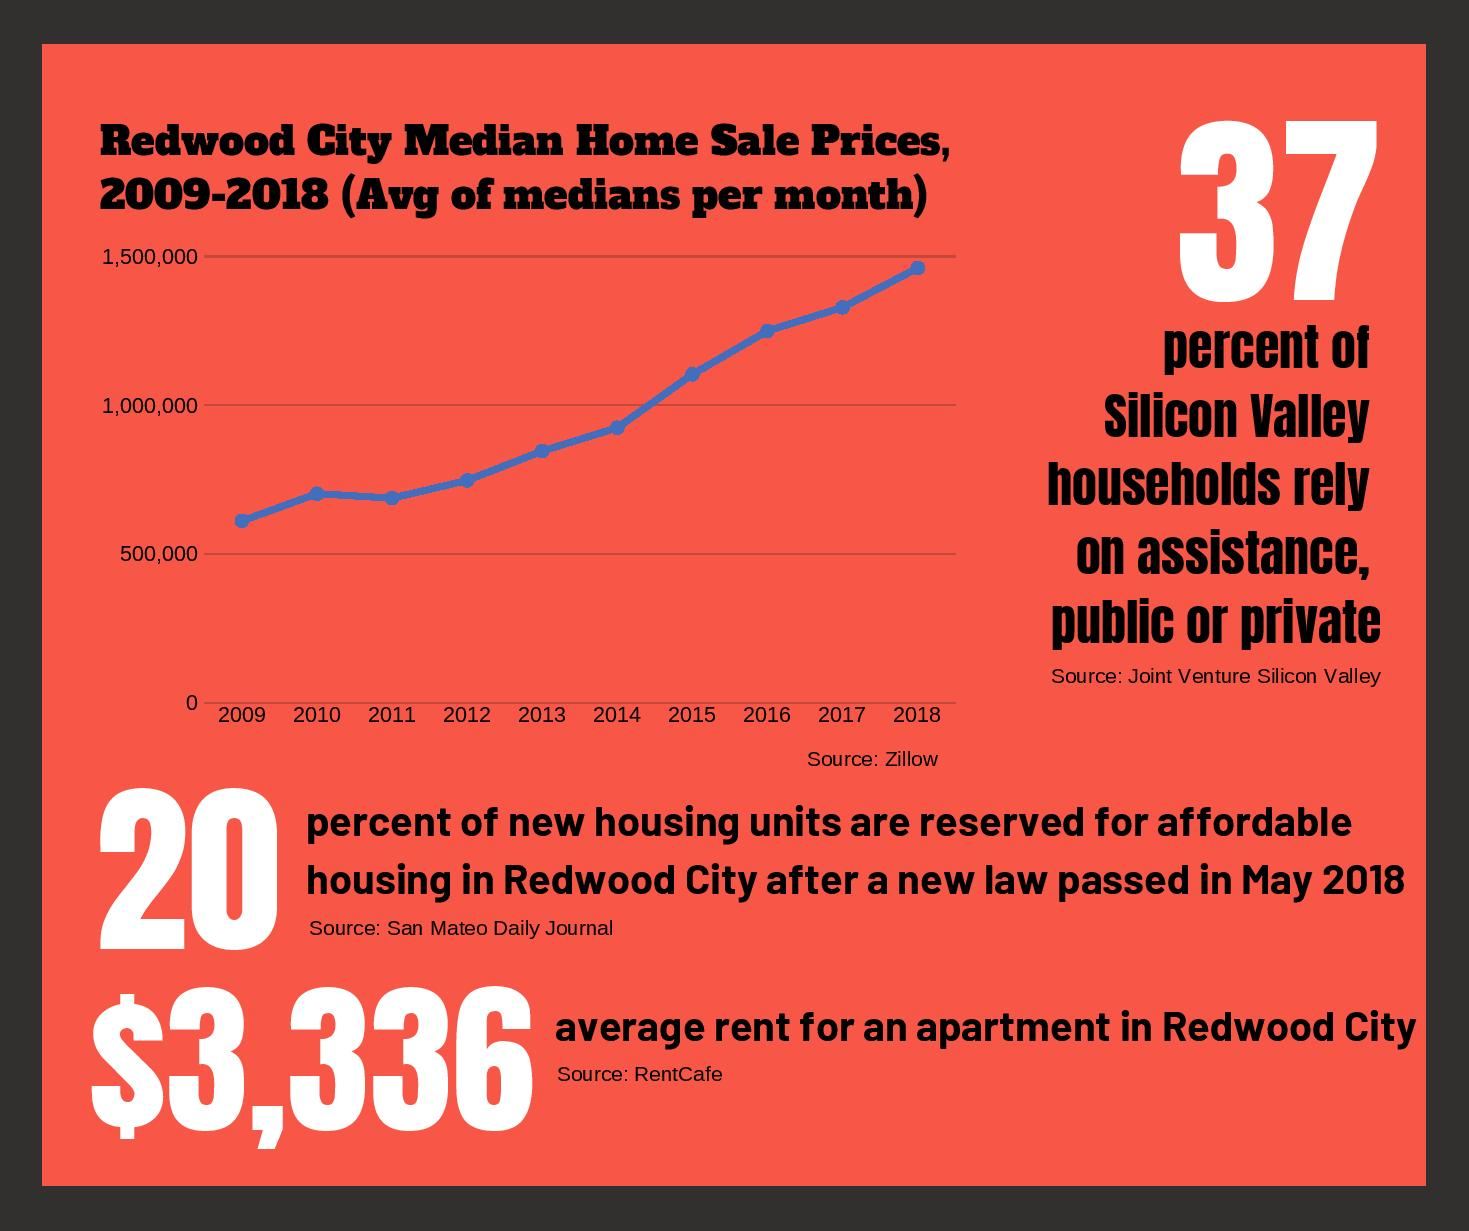 In the past 10 years, housing values in Redwood City have more than doubled, accompanied with a shortage in affordable housing and skyrocketing rent.